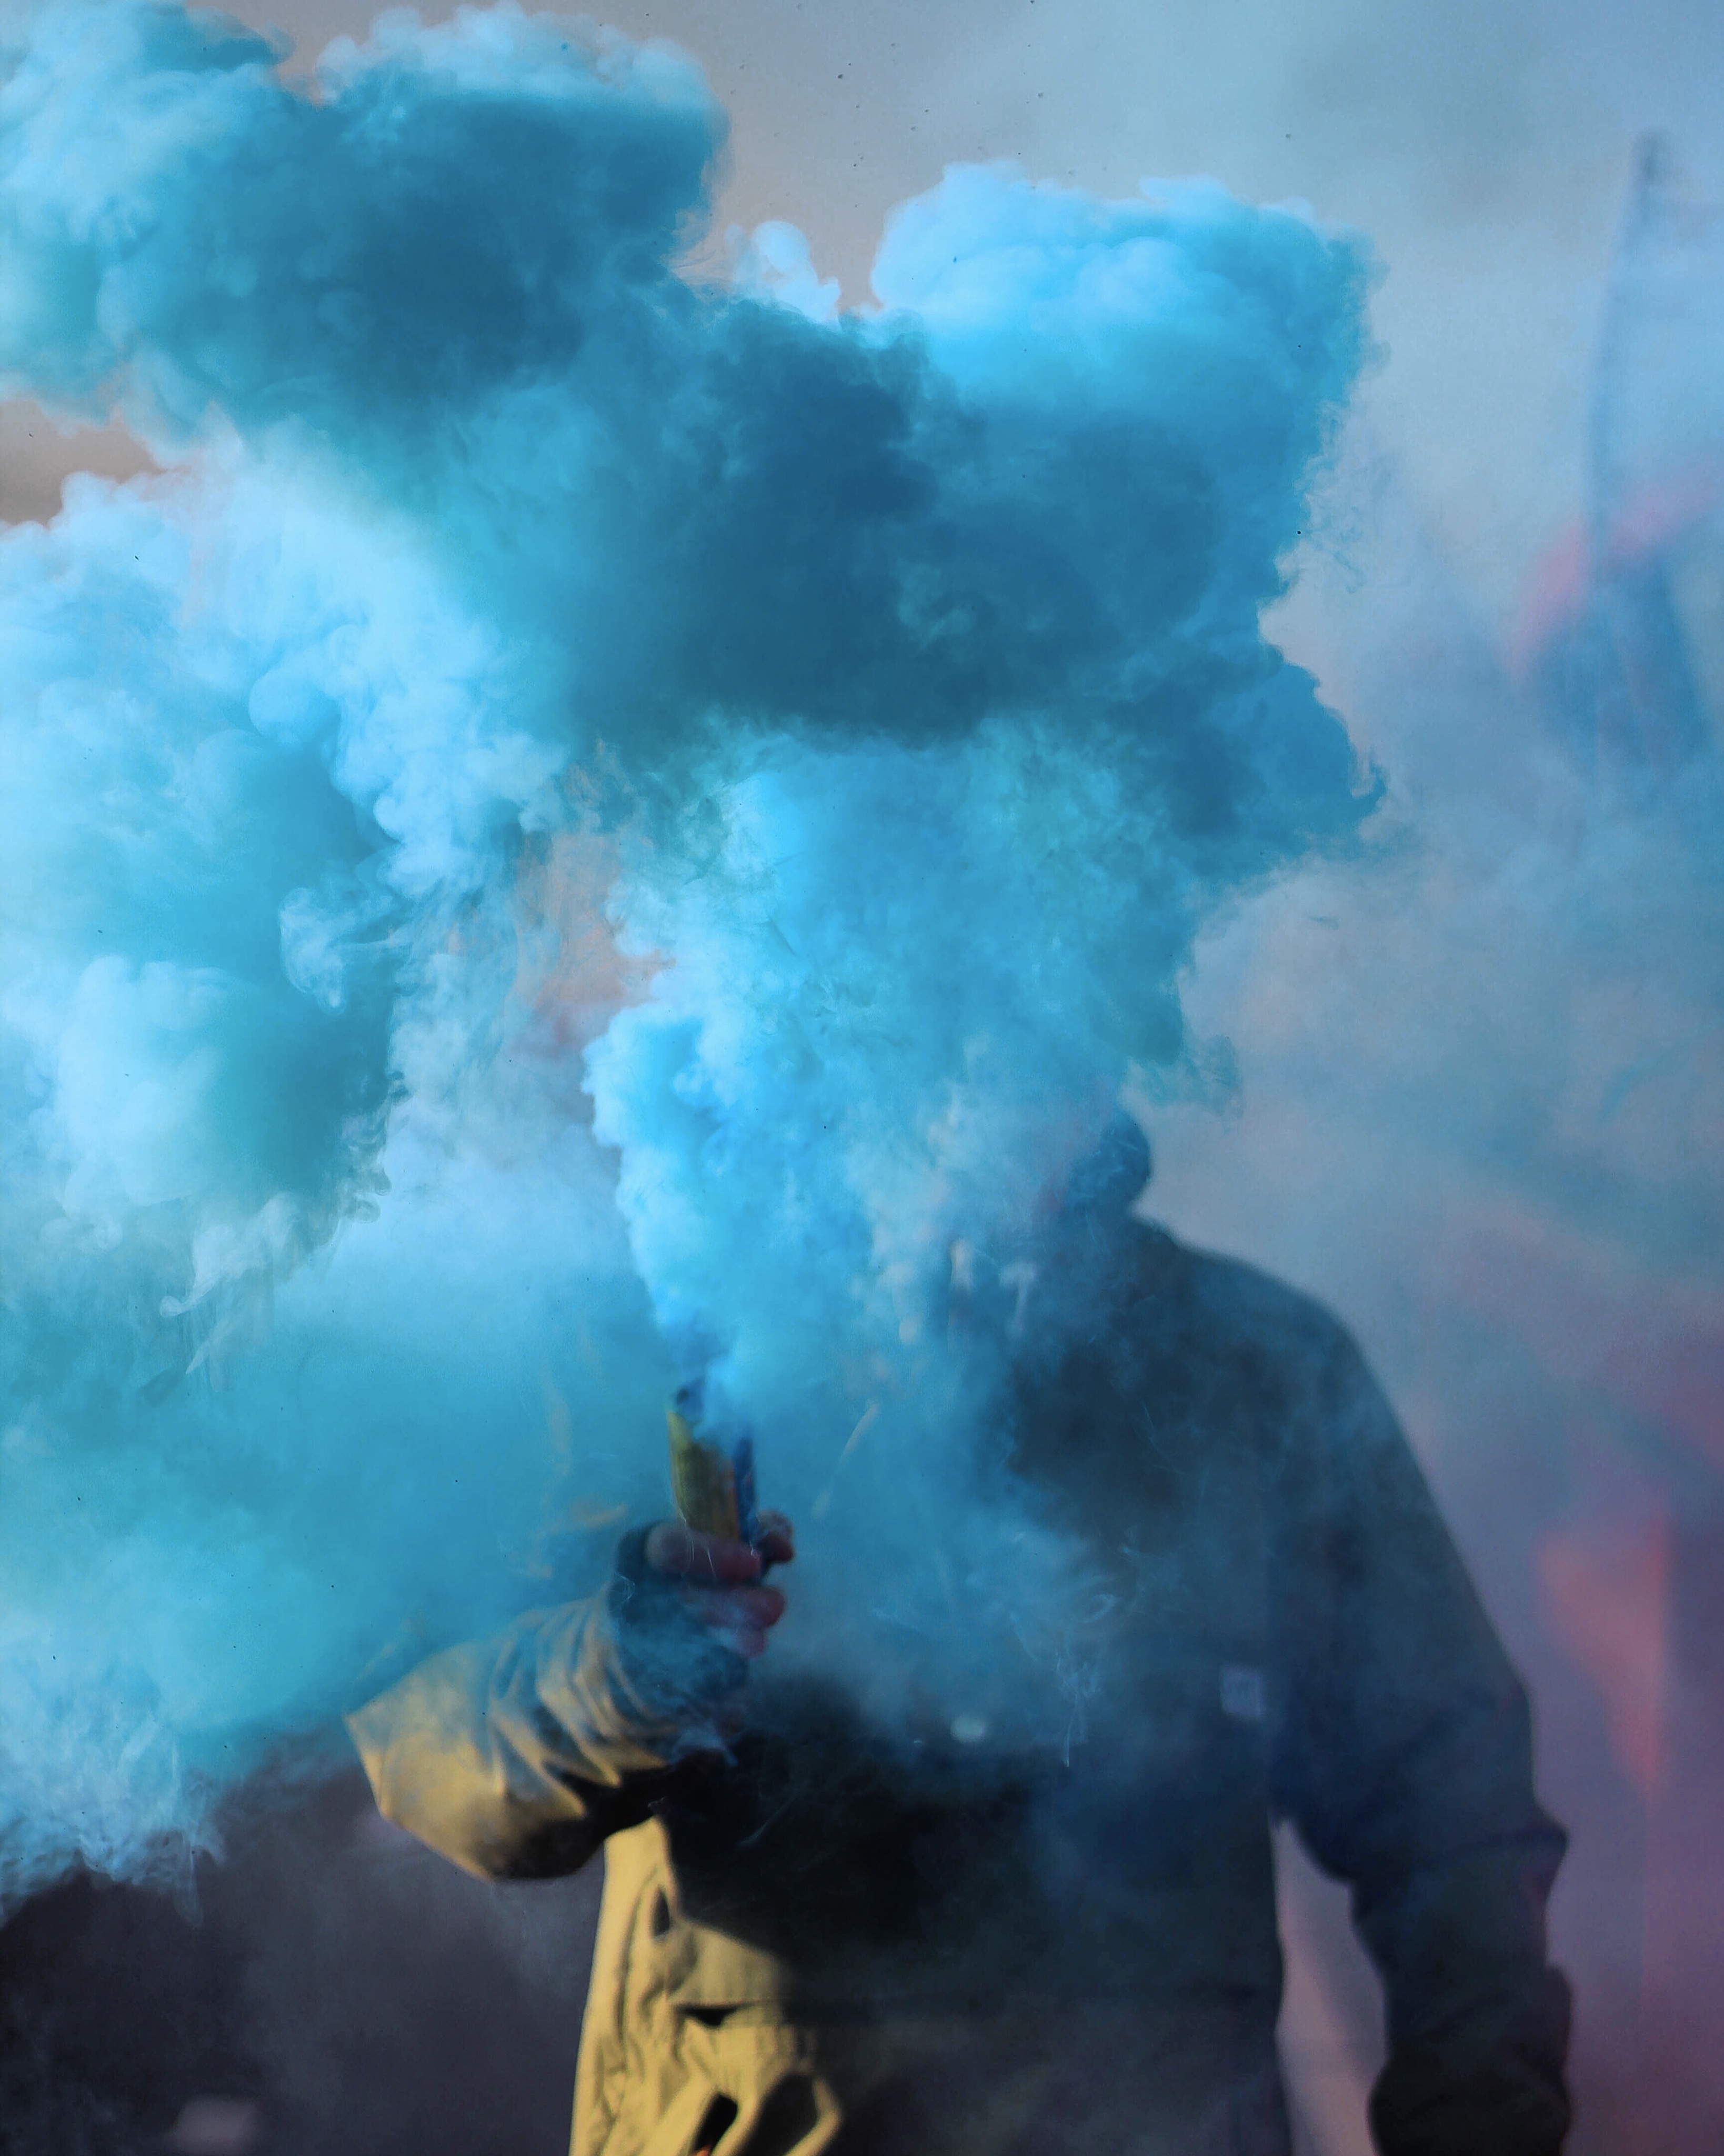 Smoke Bomb Pictures   Download Free Images on Unsplash person holding stick with blue smoke